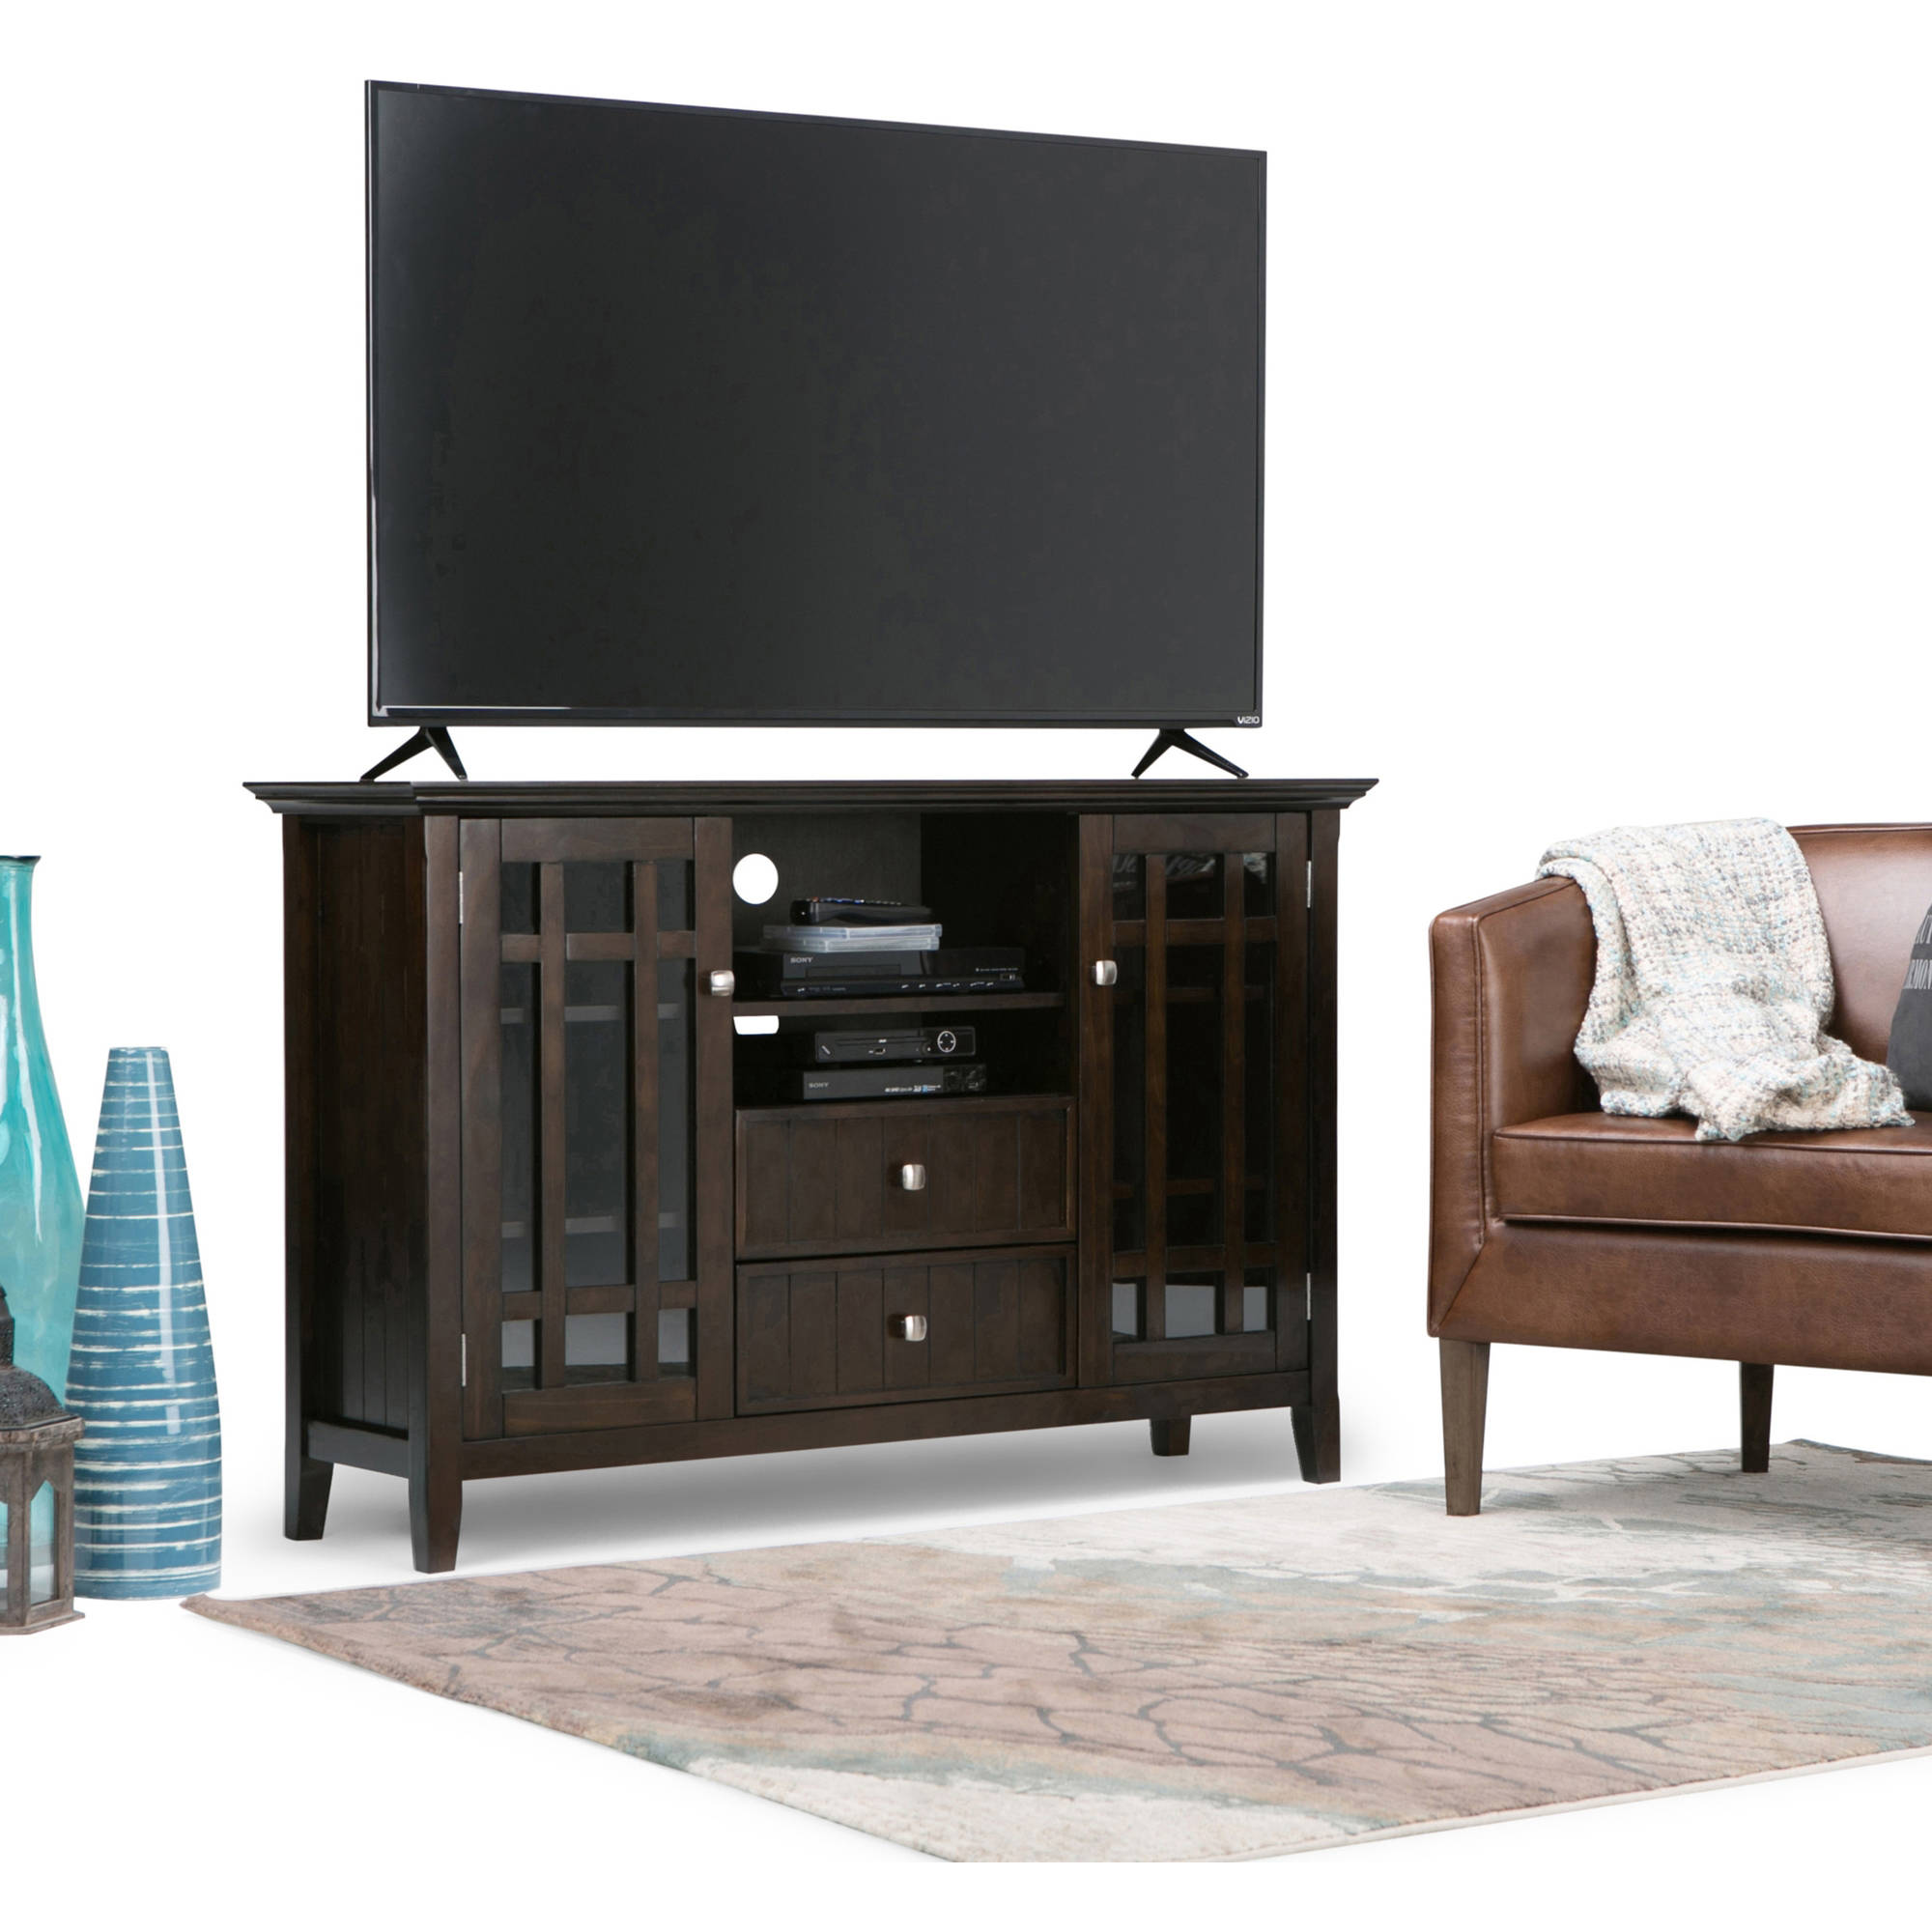 "Brooklyn + Max Hampton Collection Dark Tobacco Brown 54"" Wide TV Media Stand for TVs up to 60"""